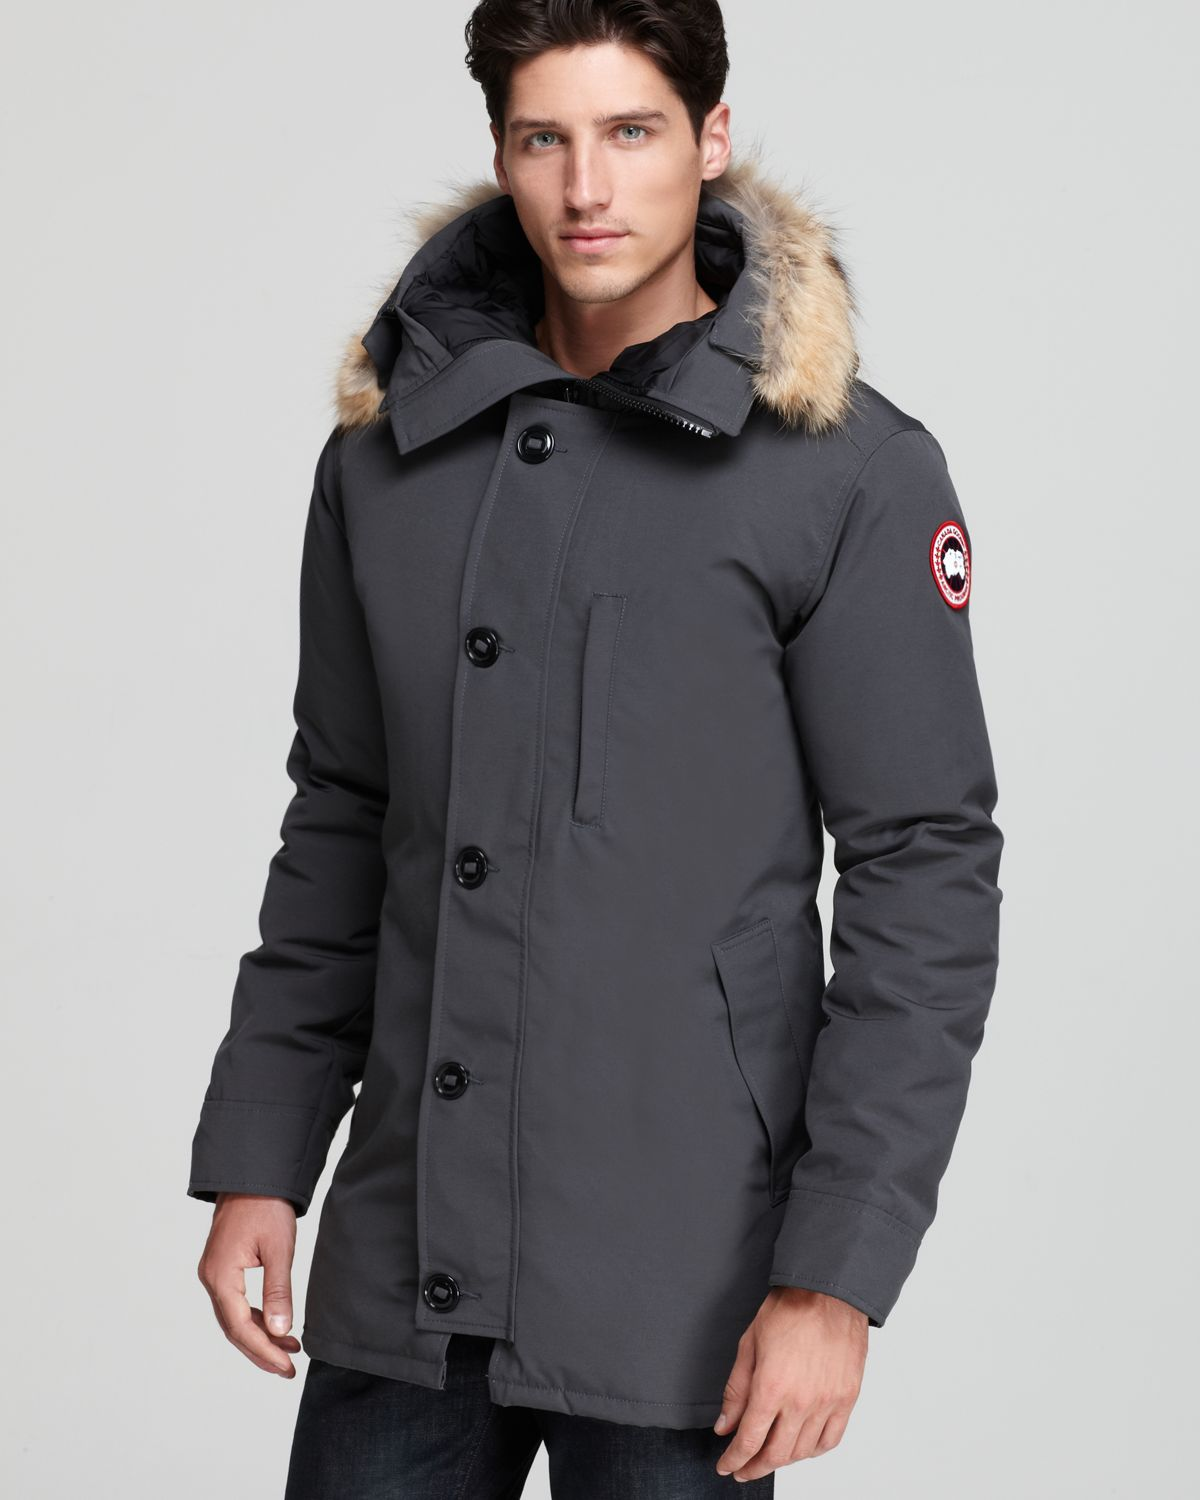 724f470b10b Canada Goose Gray Chateau Parka with Fur Hood for men